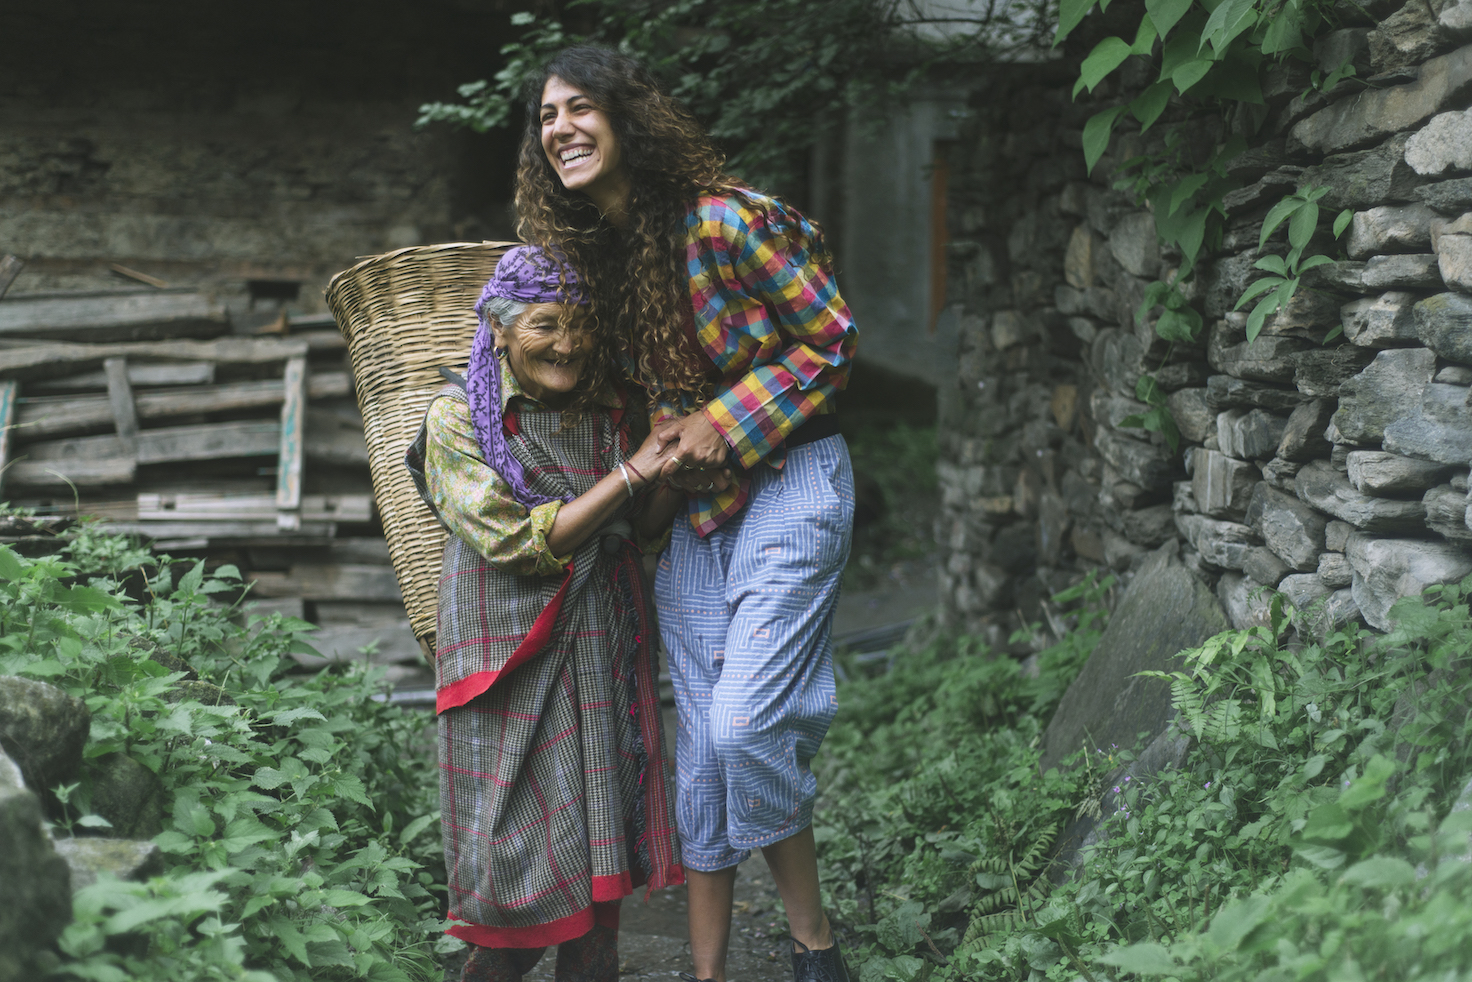 Campaign for MATTER Prints, Singapore shot in a Himalayan village